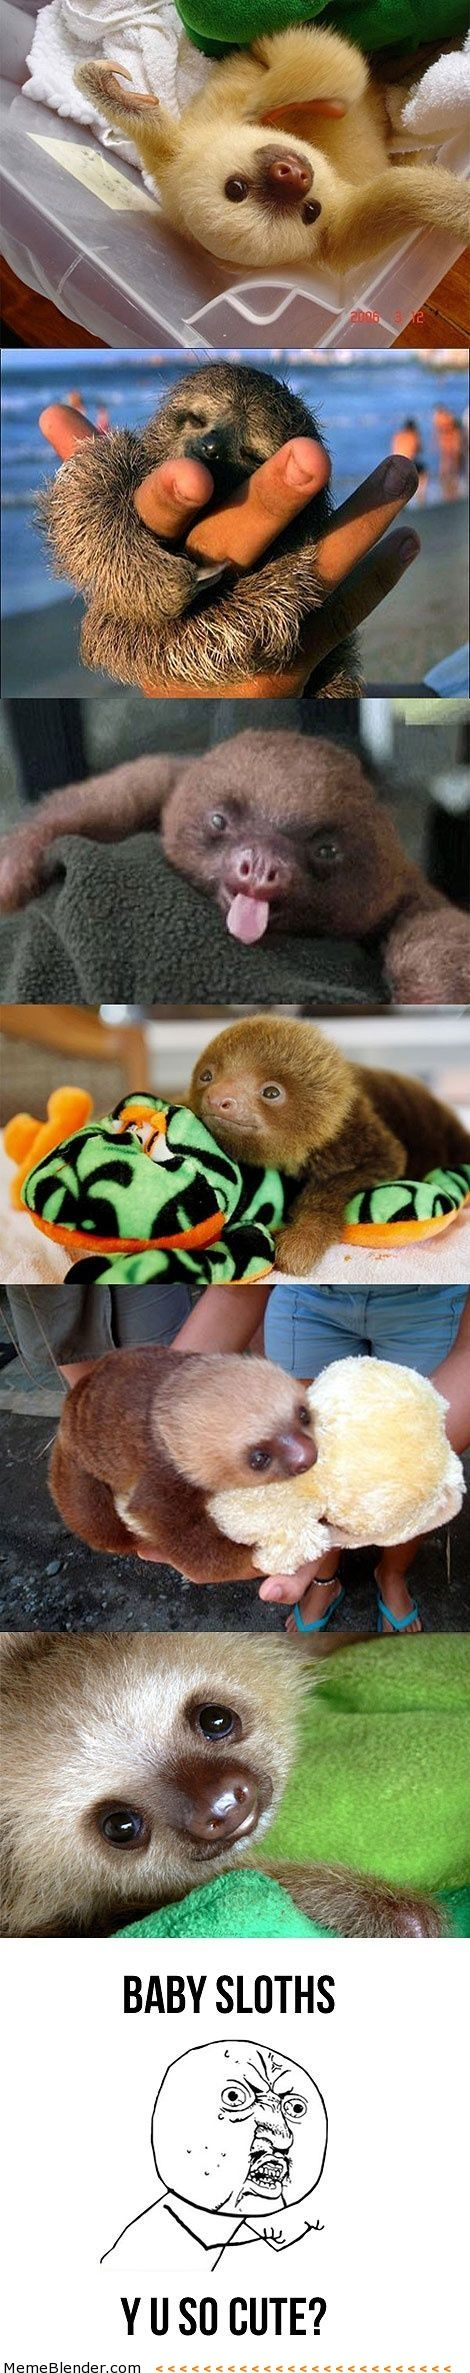 I LOVE SLOTHS! All my friends know it! I even asked for one for my birthday... my dad said no